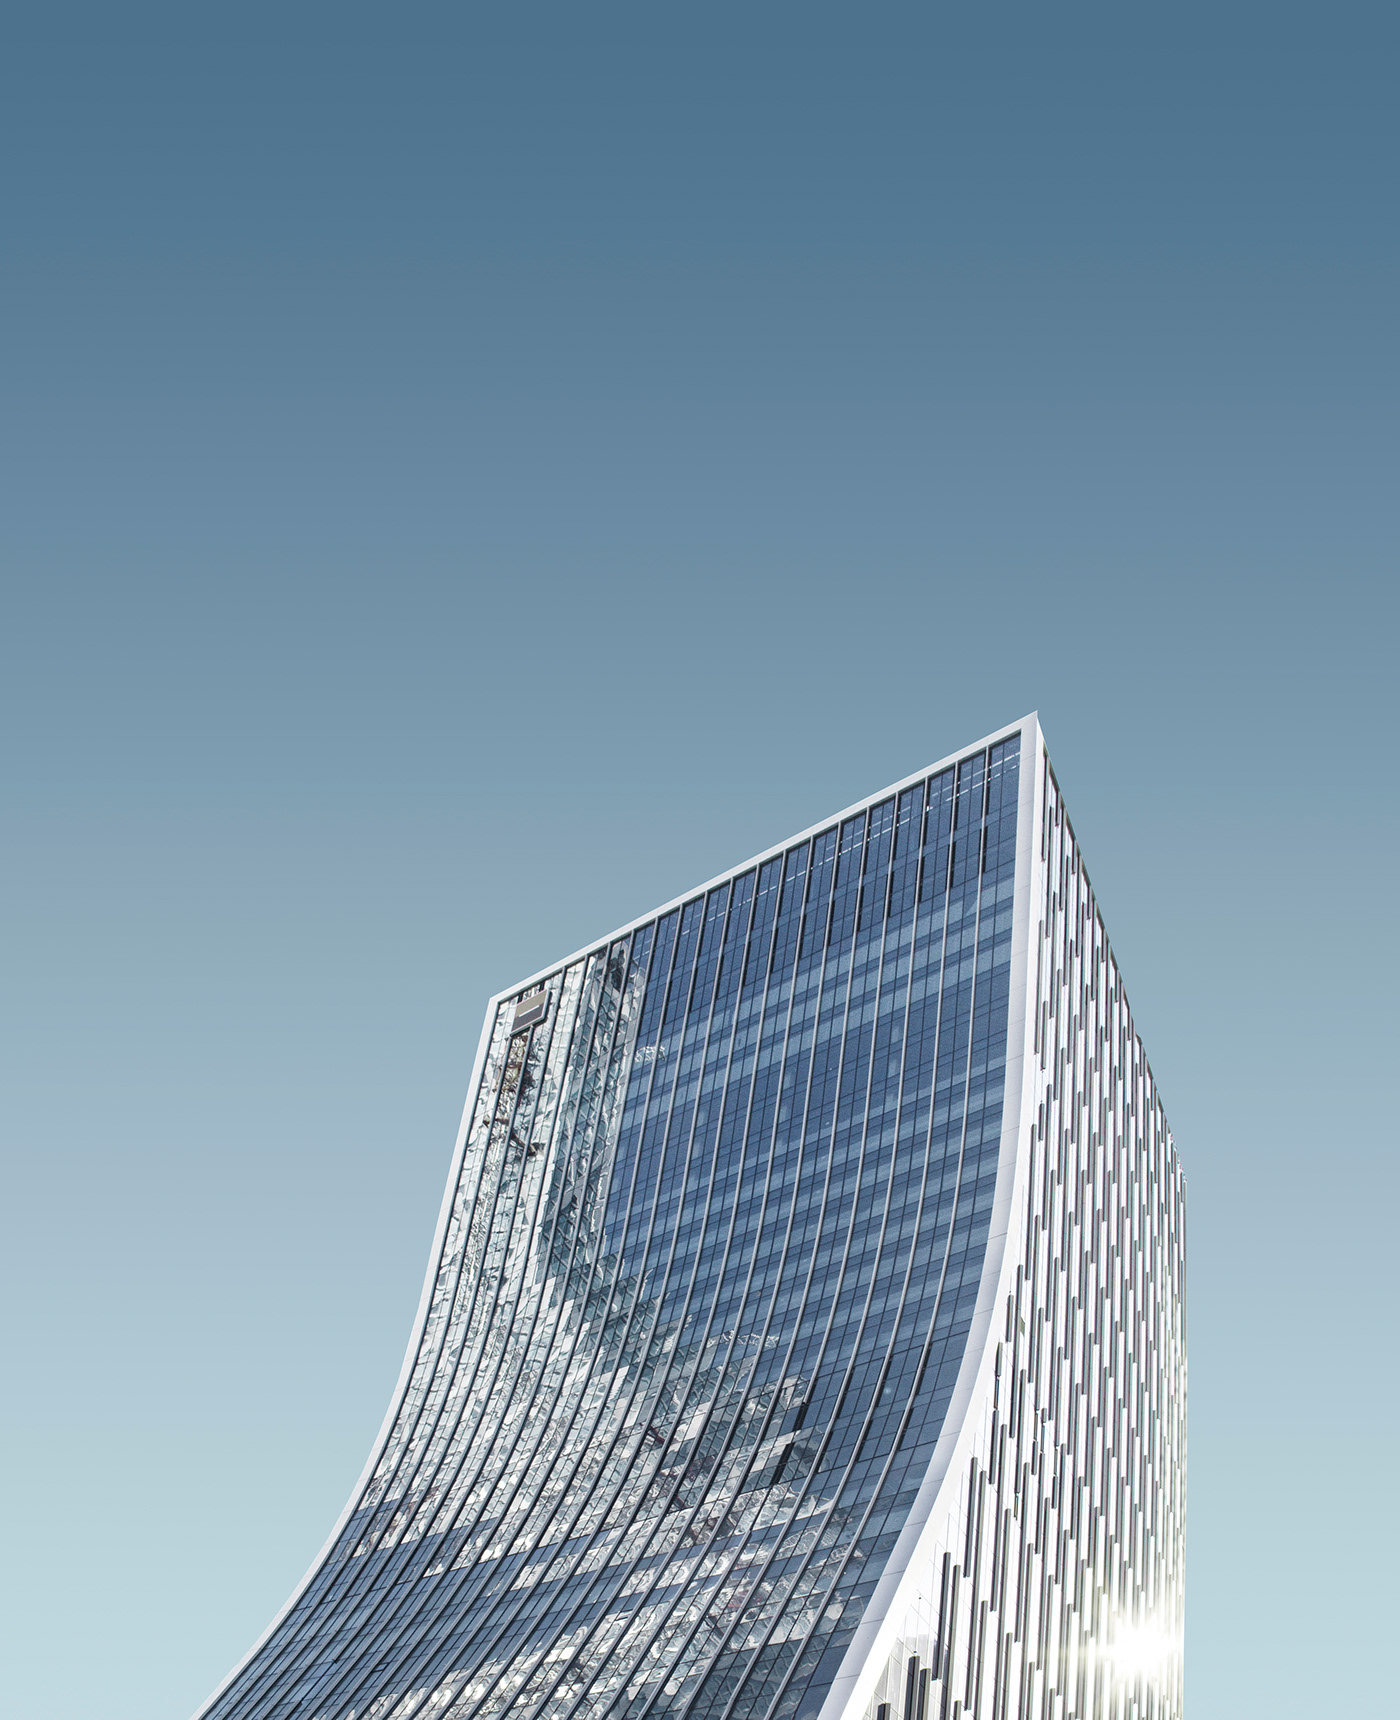 architecture minimal London geometry modern architecture building abstract clear sky pattern exterior